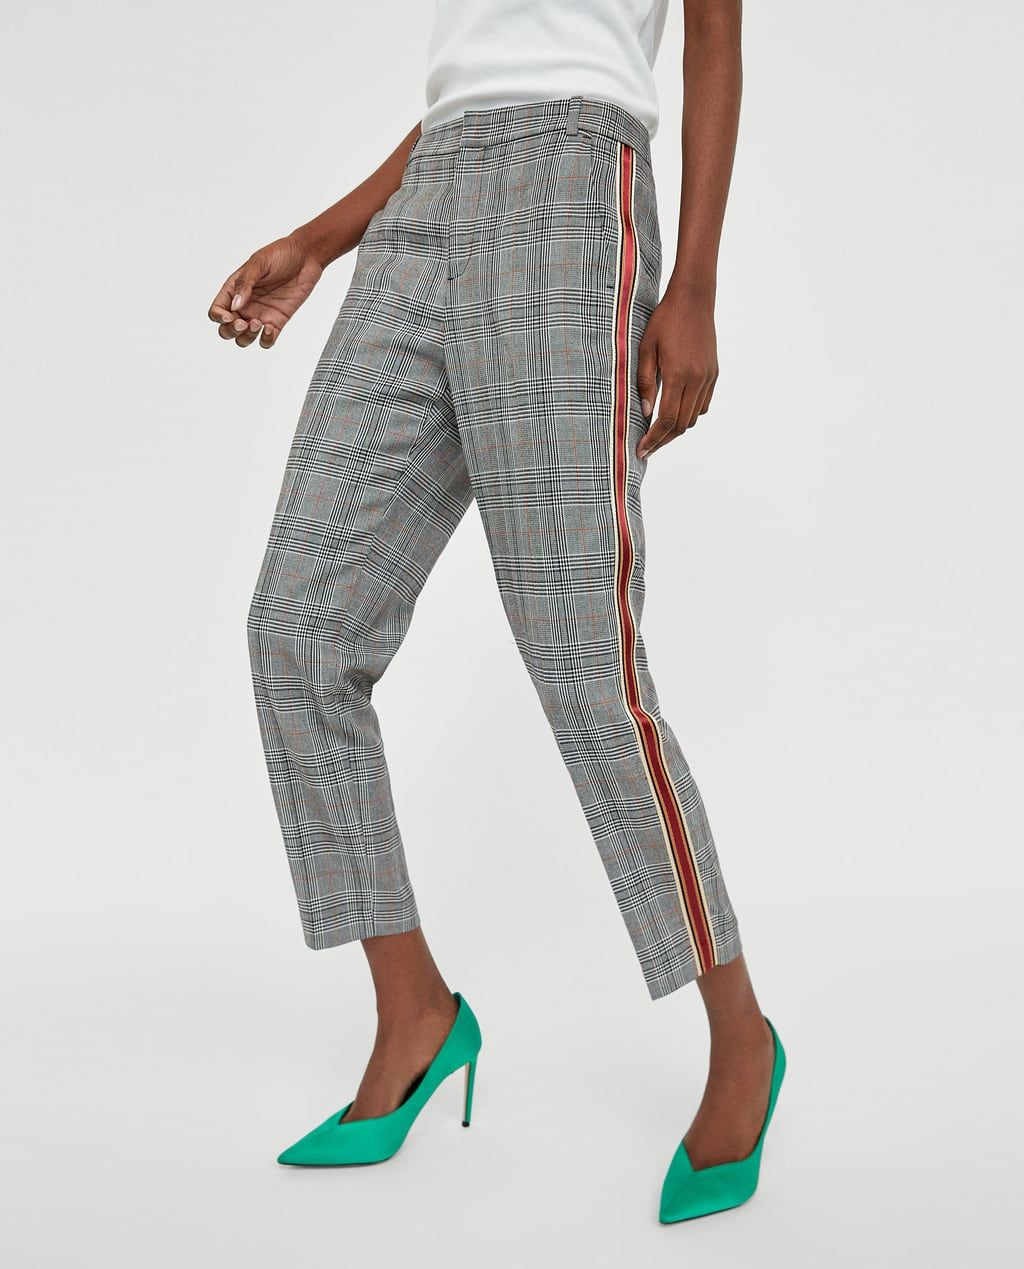 fbb7d99d Image 2 of CHECK PANTS WITH SIDE STRIPES from Zara | clothe | Zara ...